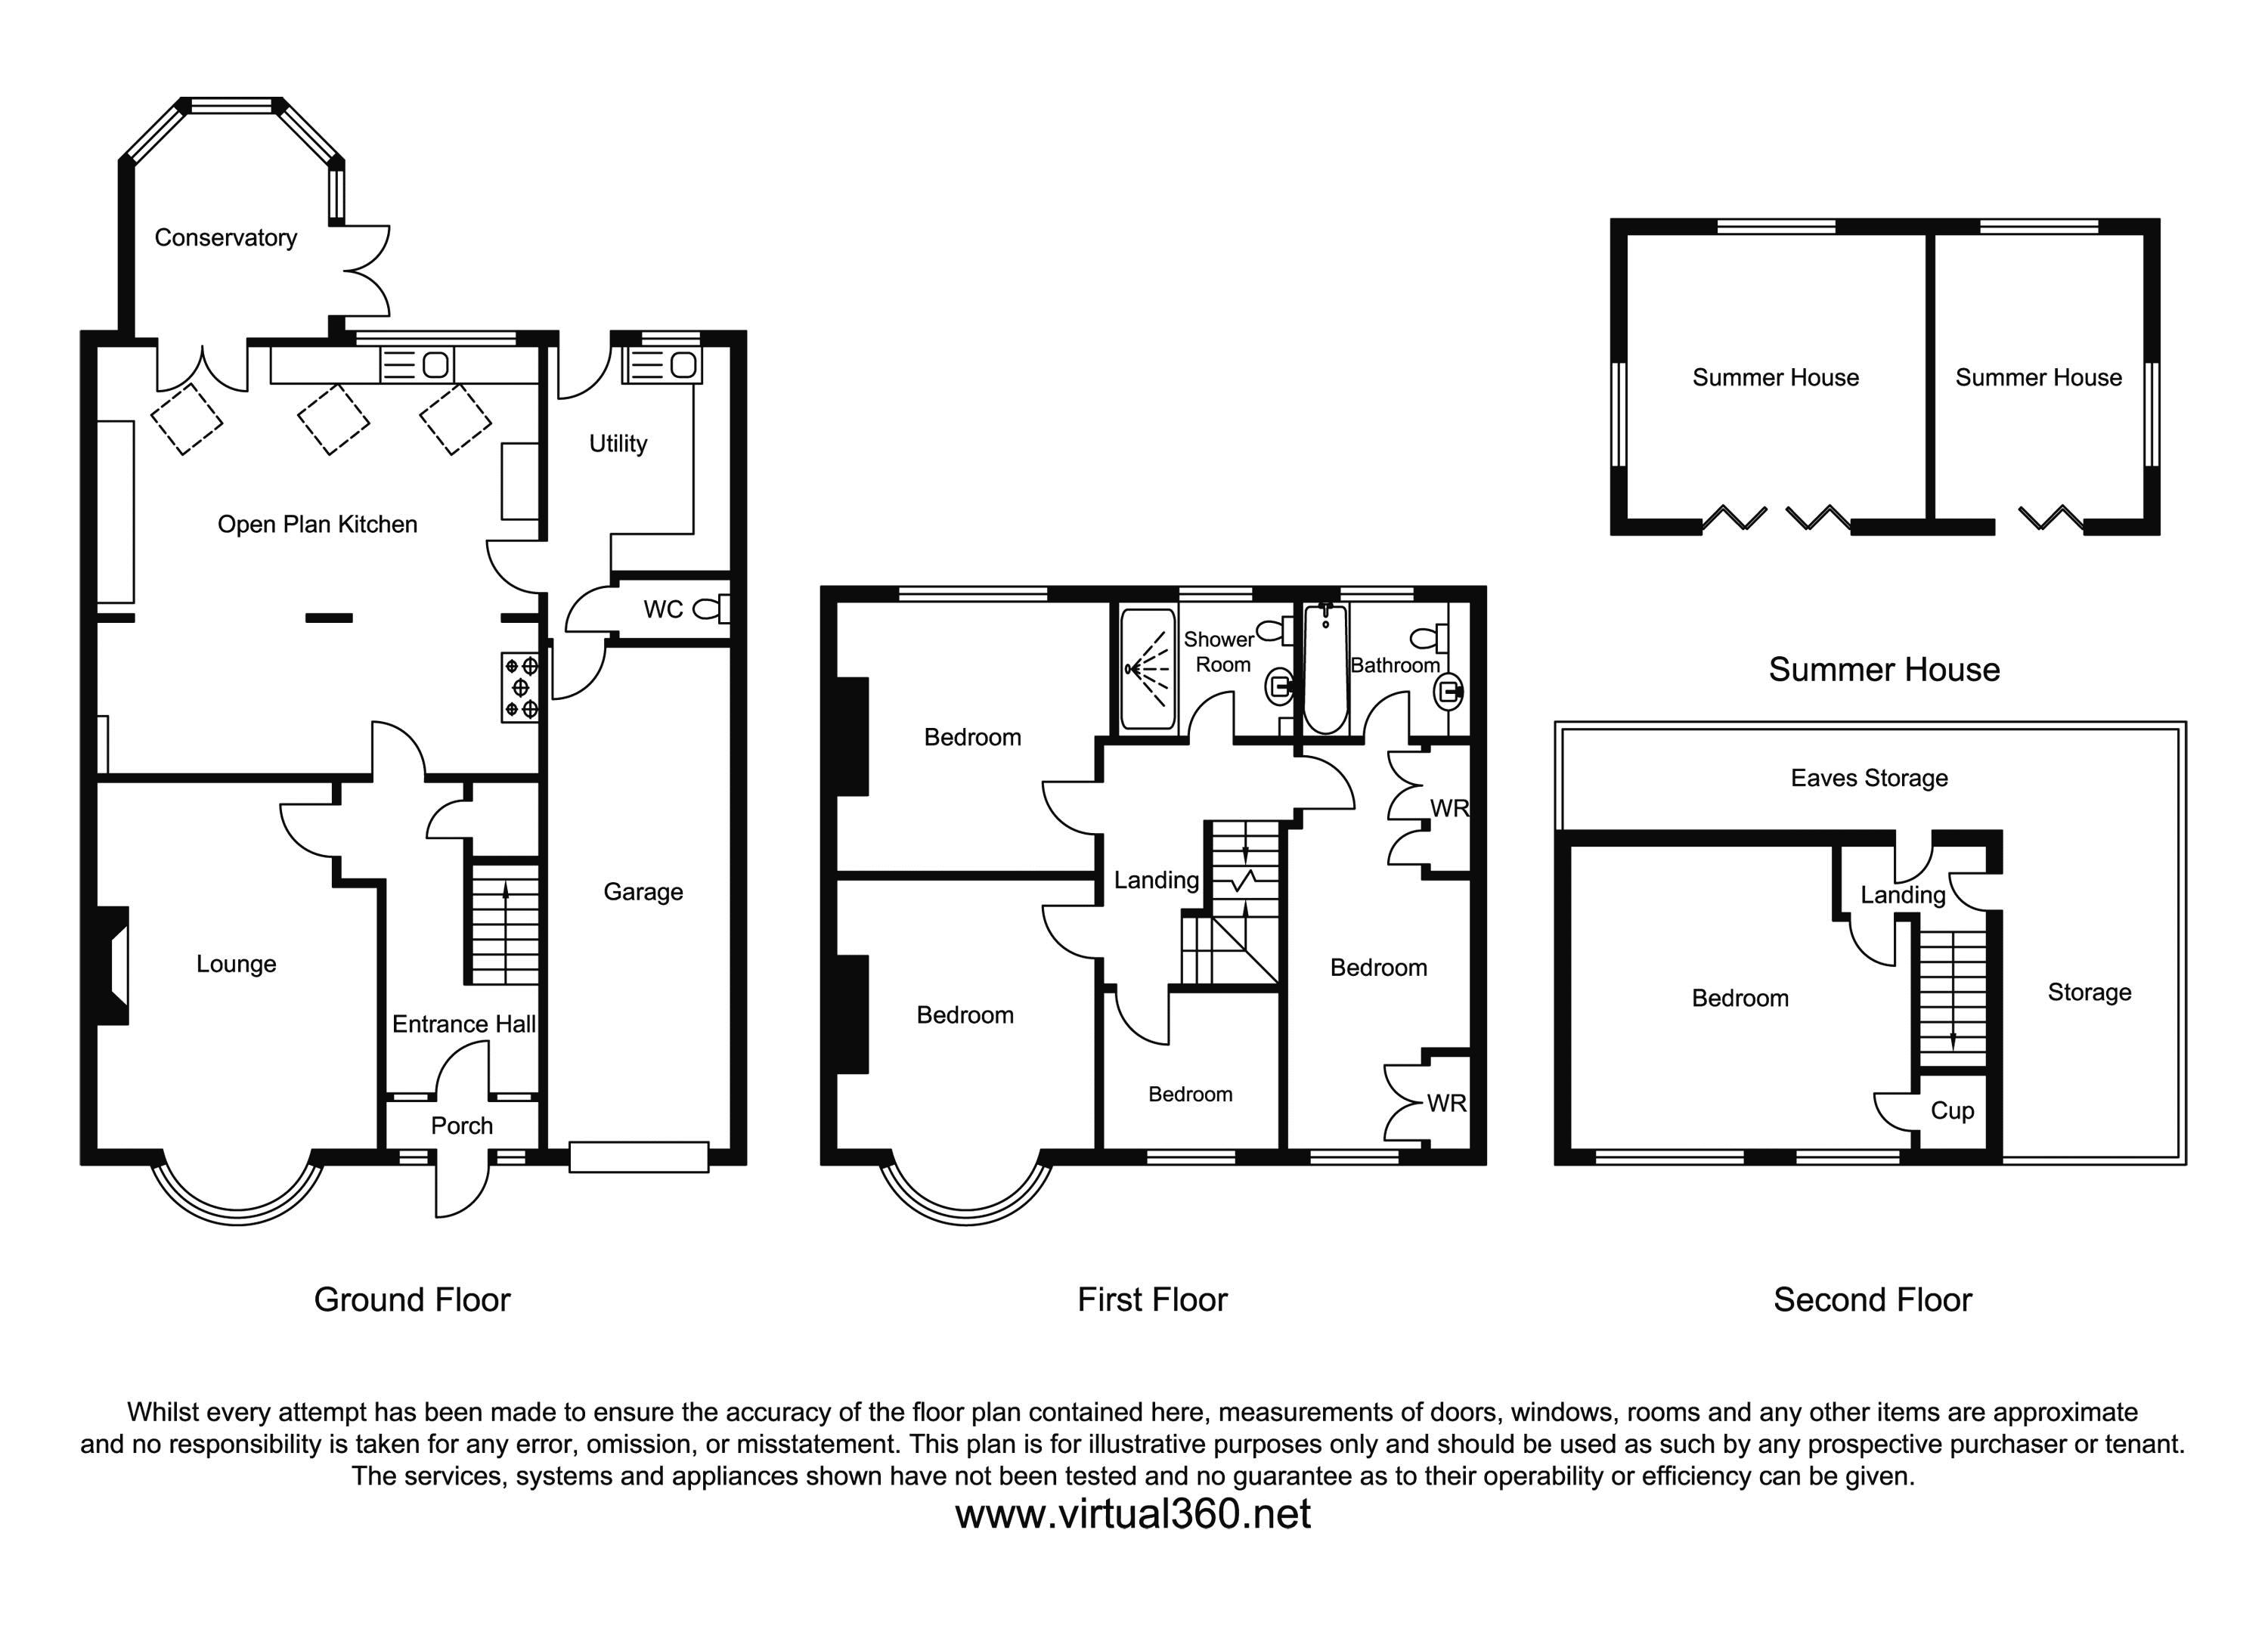 Station Road, Wombourne, South Staffordshire floor plan